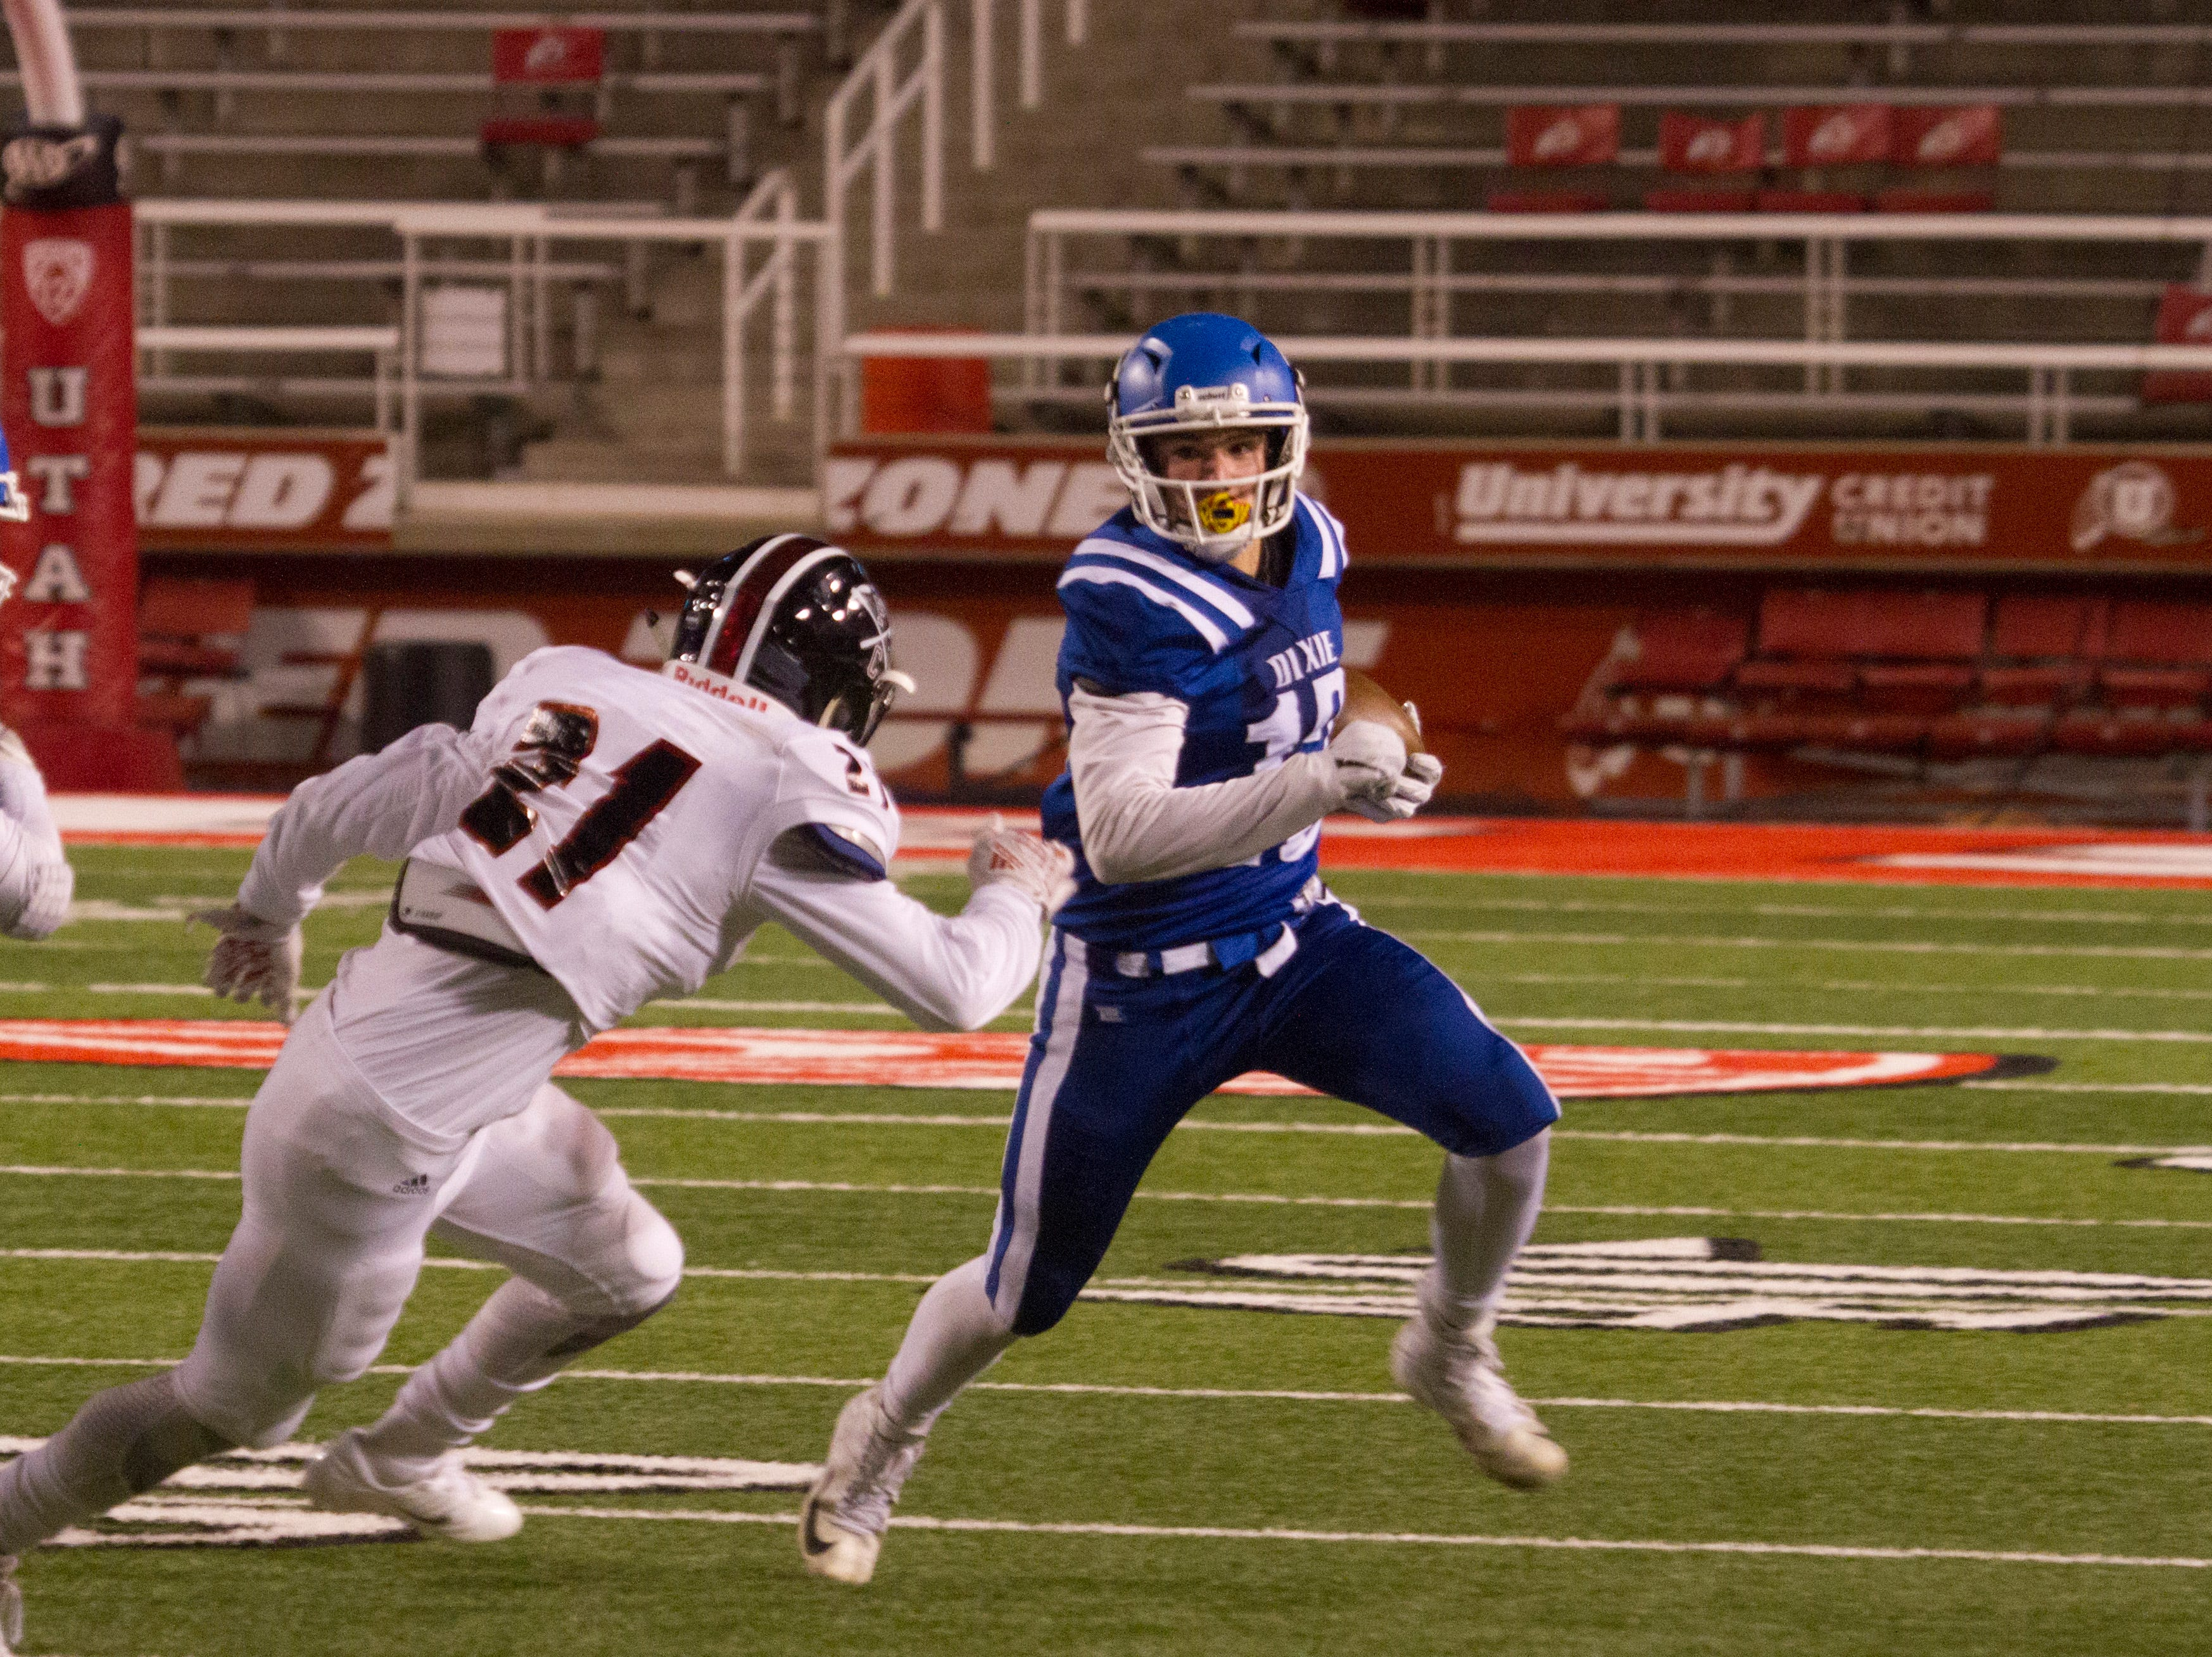 Dixie High School takes on Park City during the state semifinals Thursday, Nov. 8, 2018.